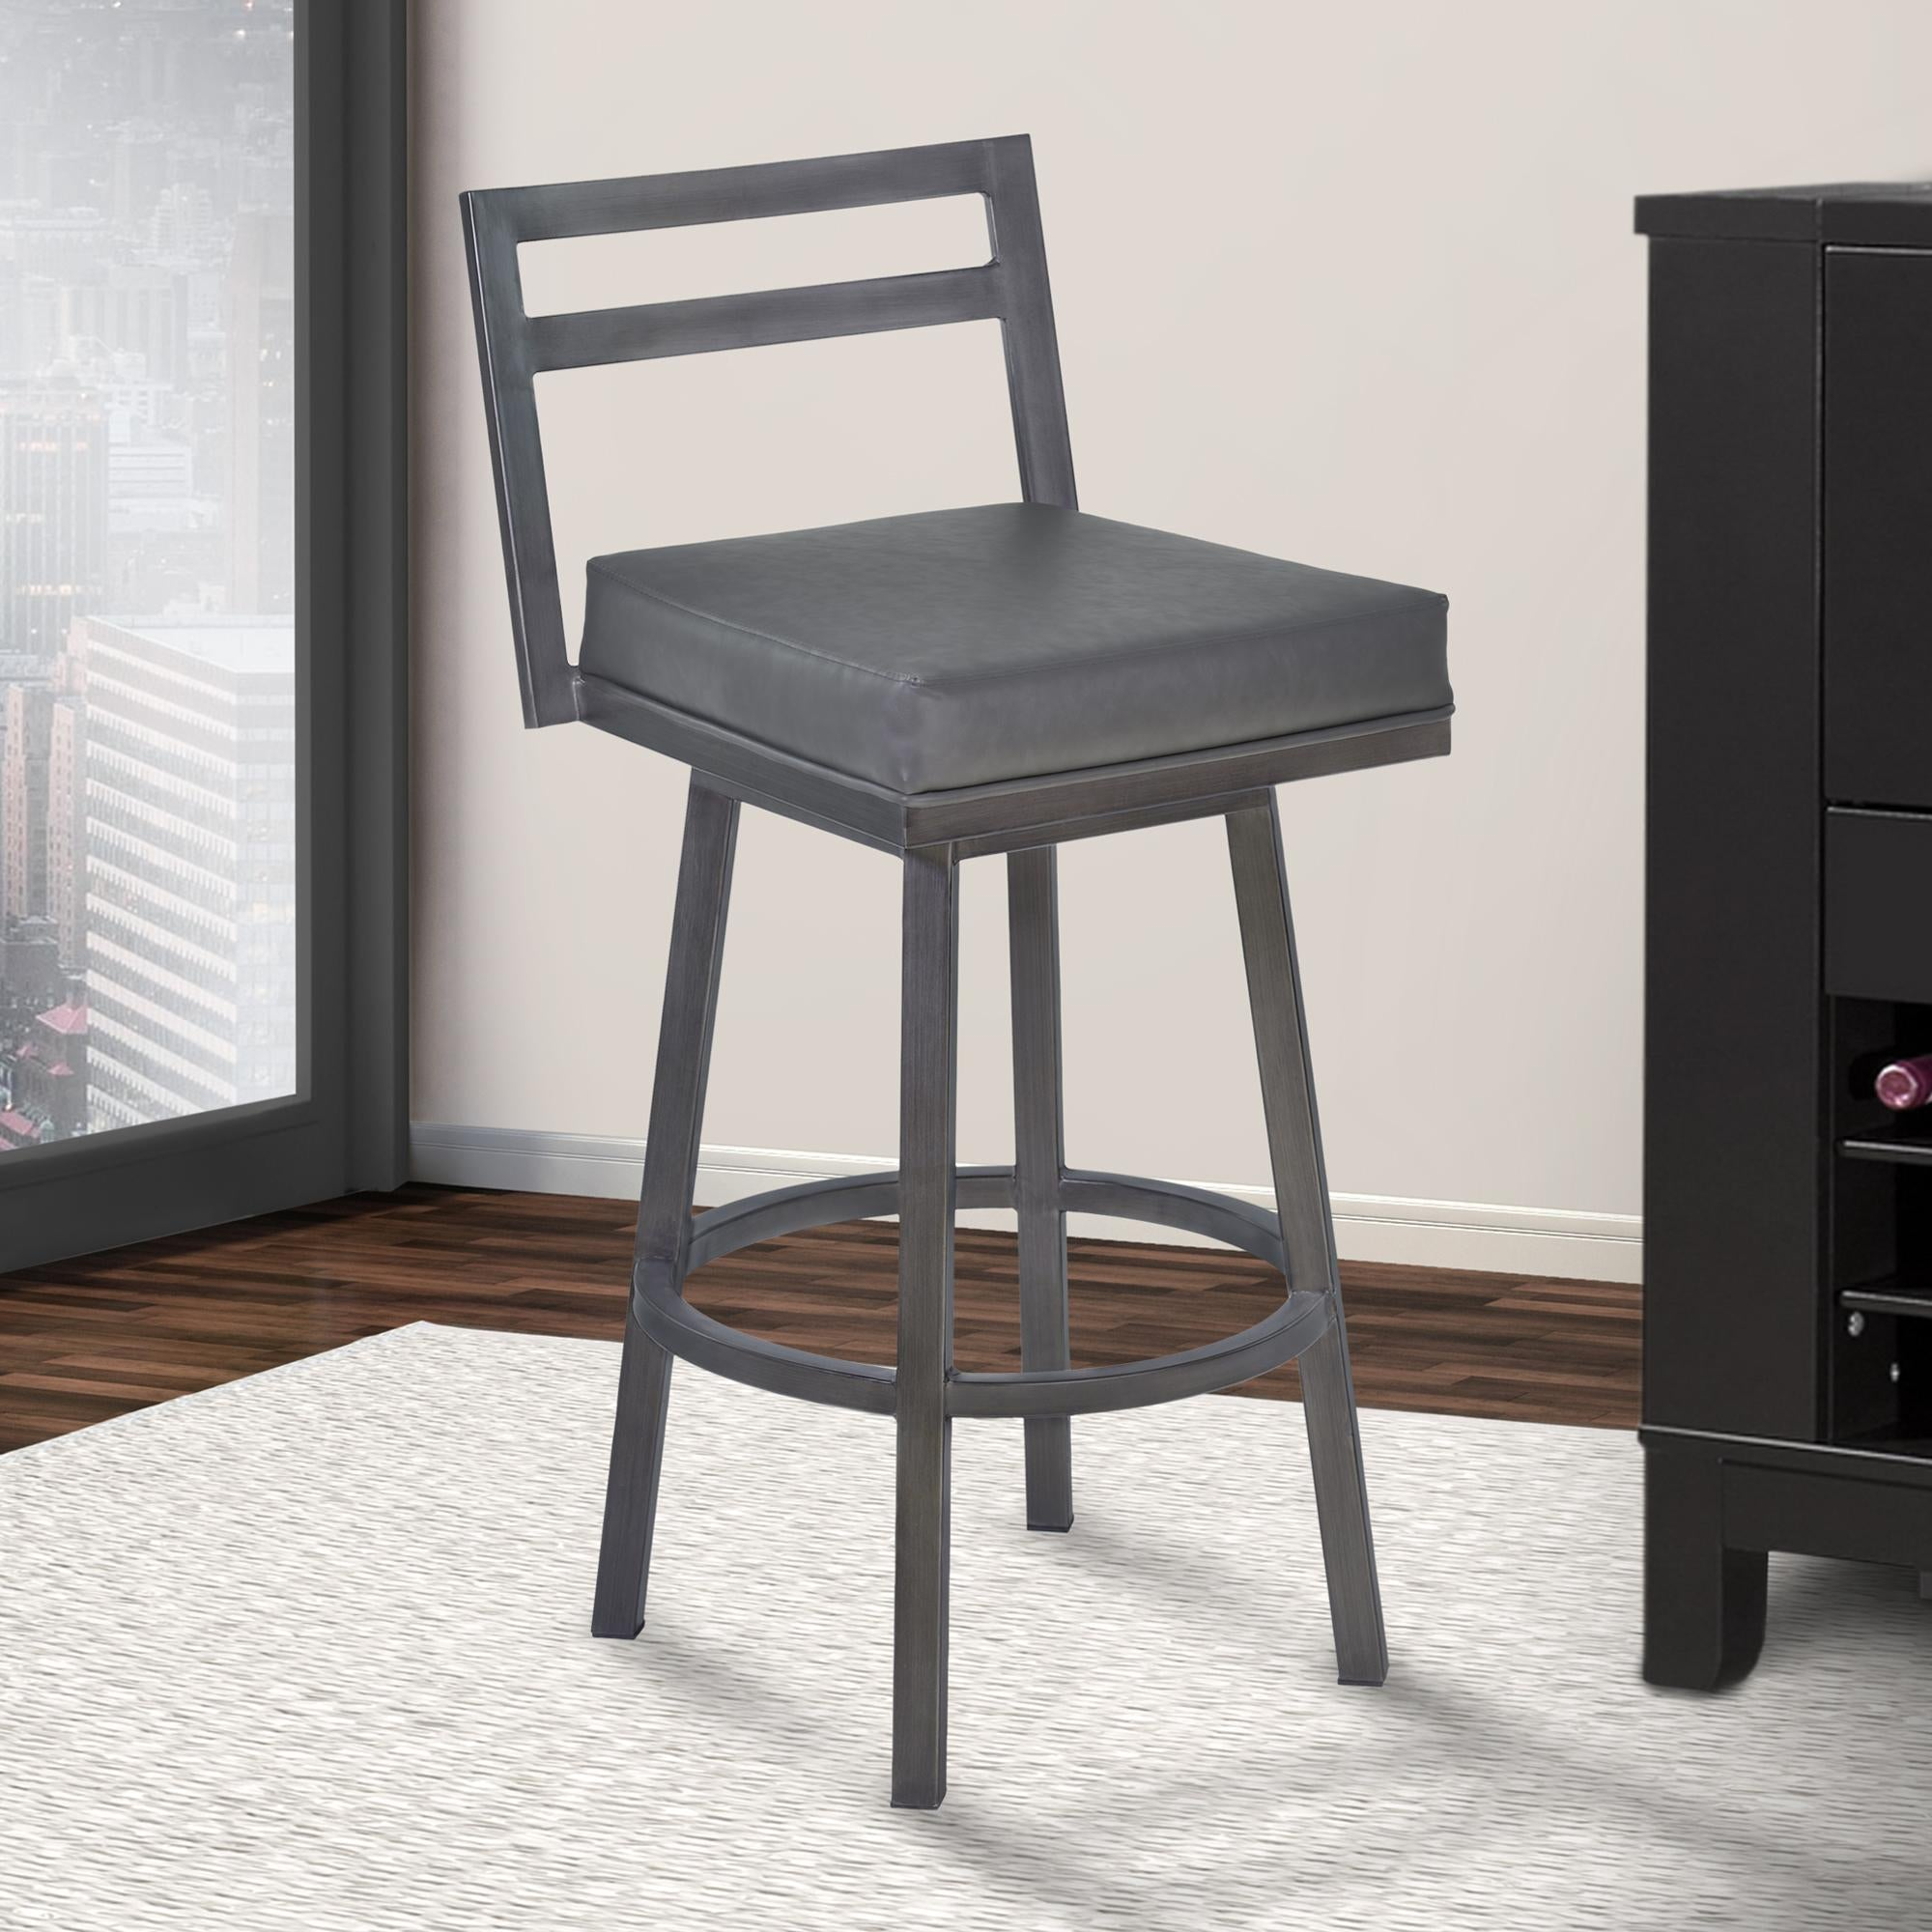 Armen Living Moniq 26' Counter Height Metal Swivel Barstool in Vintage Grey Faux Leather and Mineral Finish